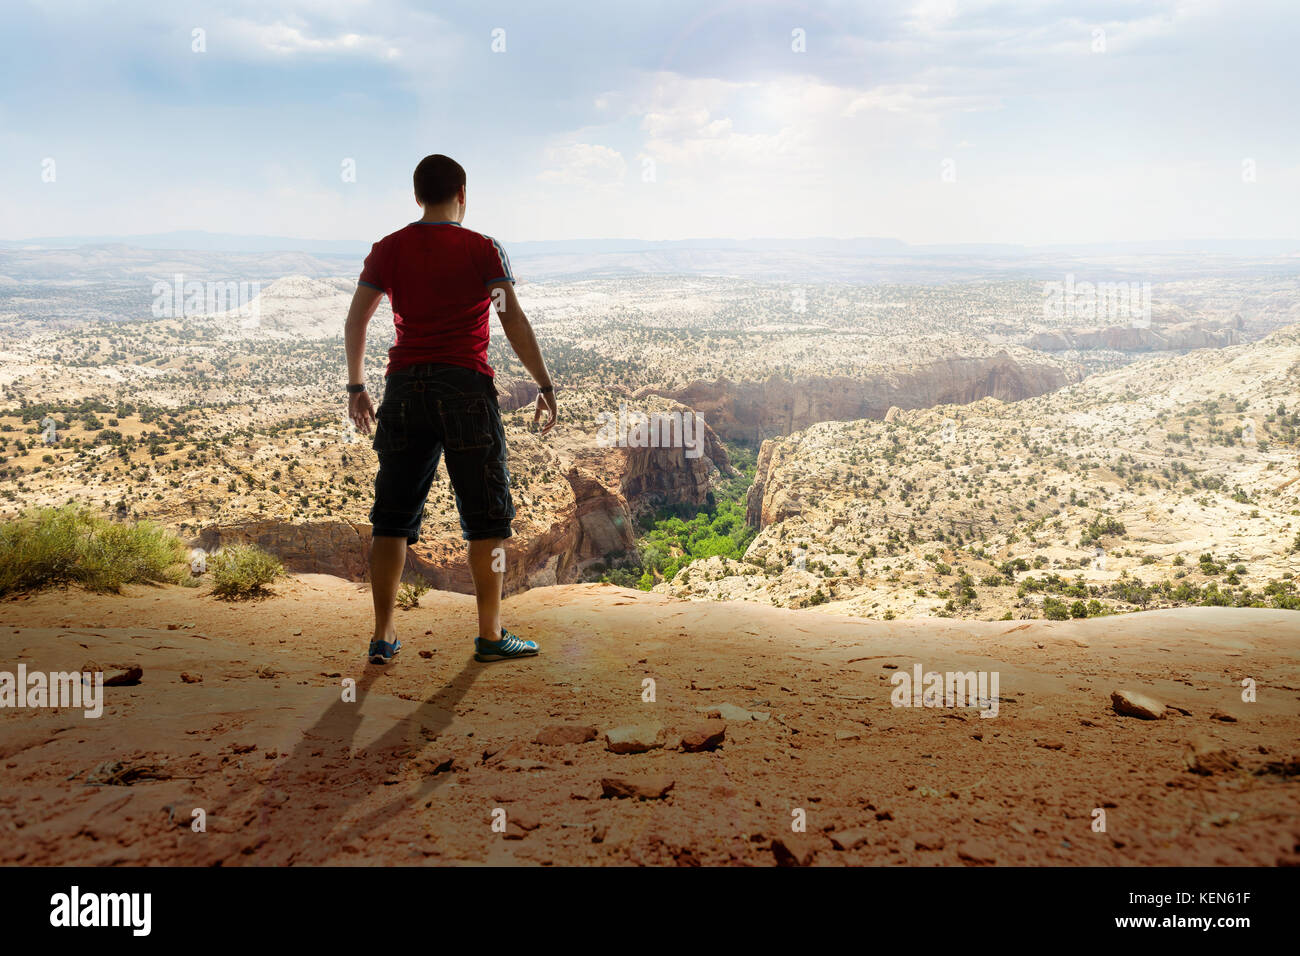 Man standing before something unknown - Stock Image